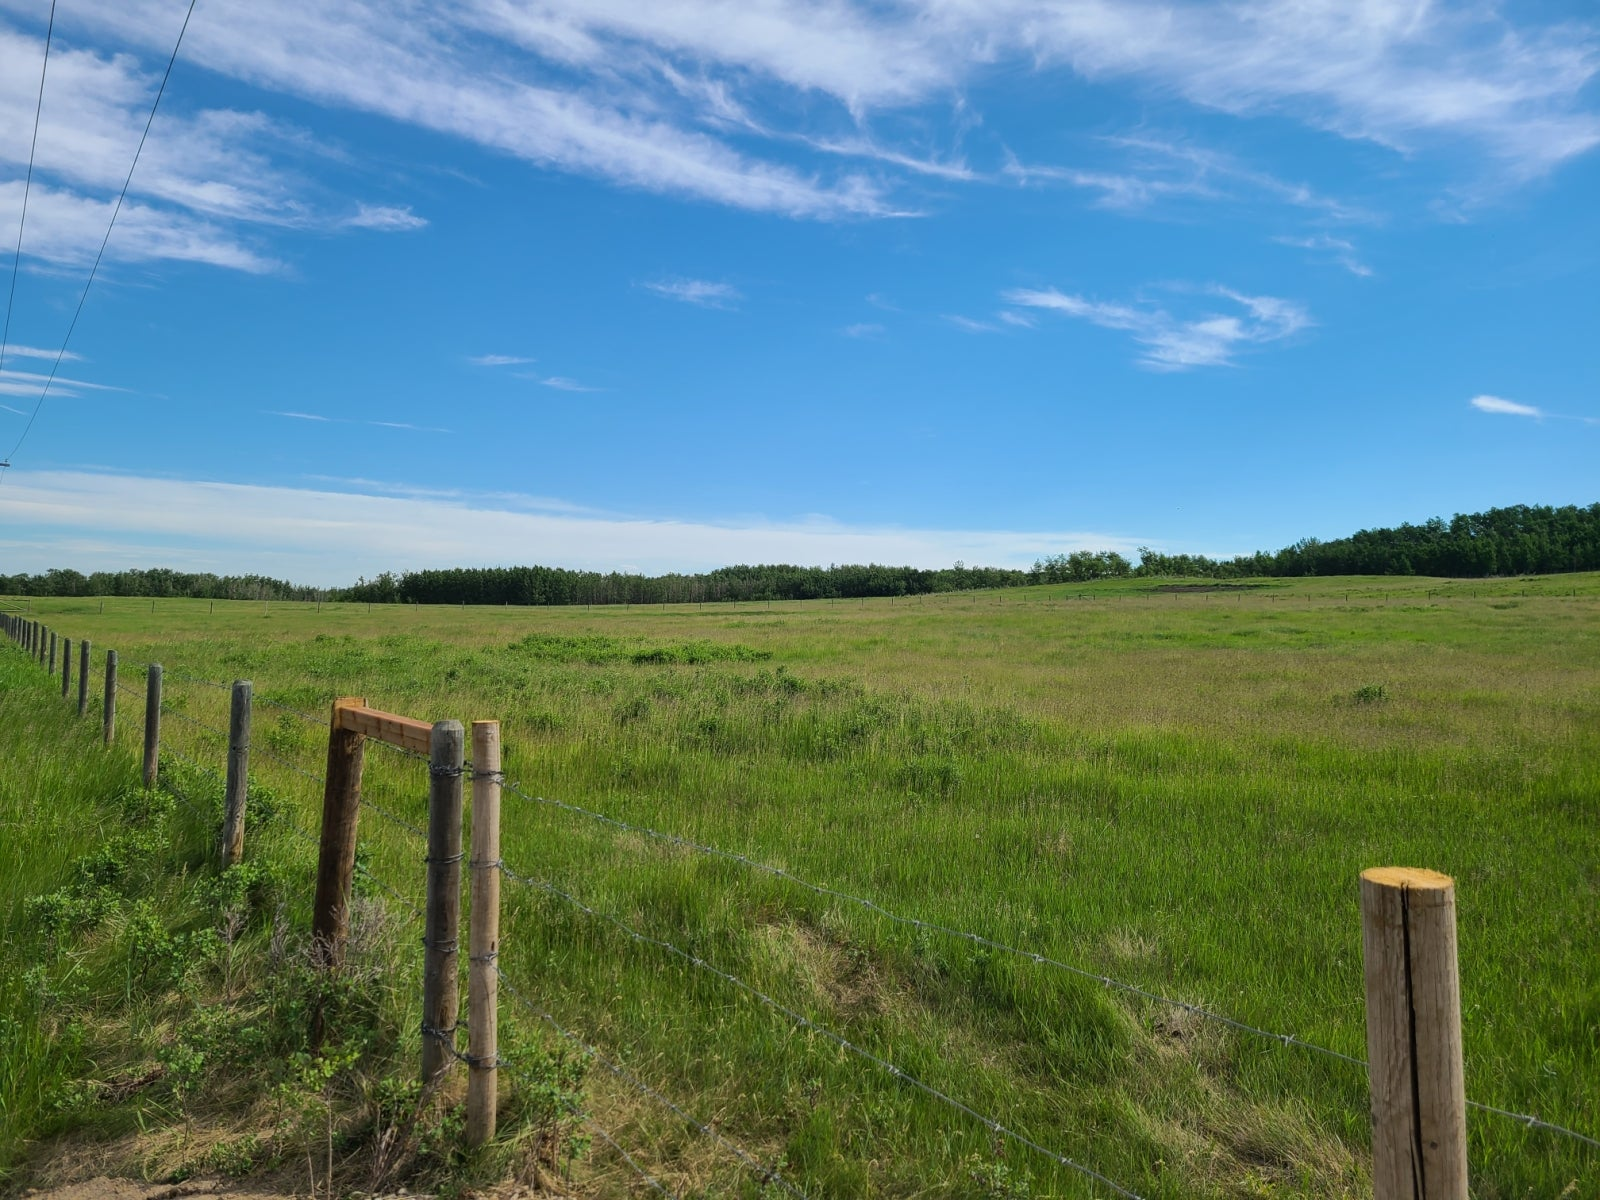 Range Road 282, Rural Red Deer County, AB  T4C 1R4 - Other Land for sale(A1120817) #1